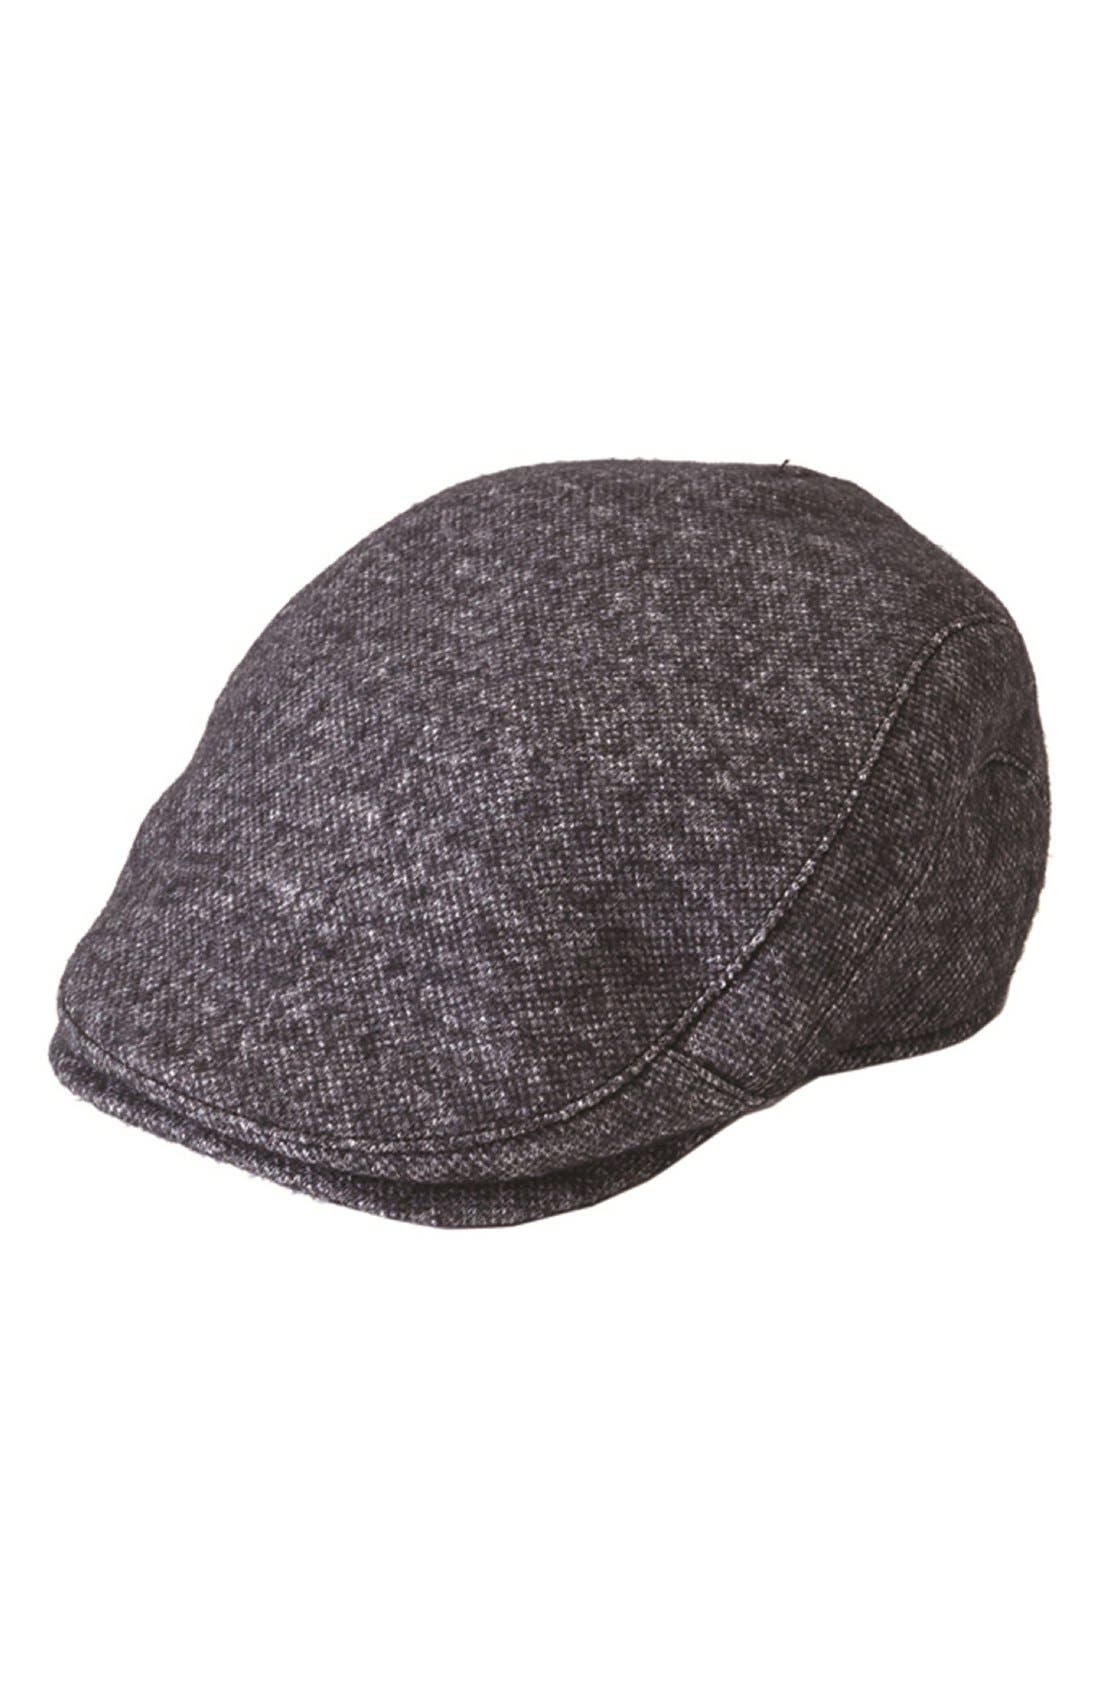 GOORIN BROTHERS High Road Driving Cap